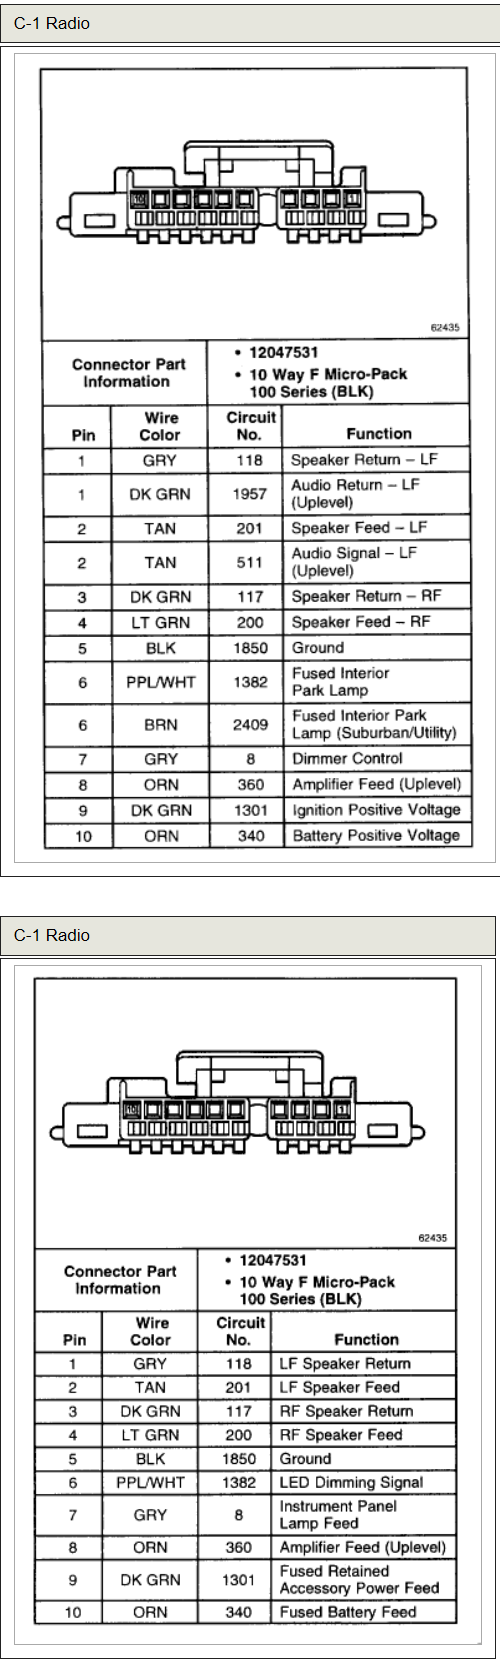 chevrolet car radio stereo audio wiring diagram autoradio ... 2000 chevy blazer radio wiring diagram 2000 chevy radio wiring diagram schematics diagrams, car radio wiring diagram, freeware software